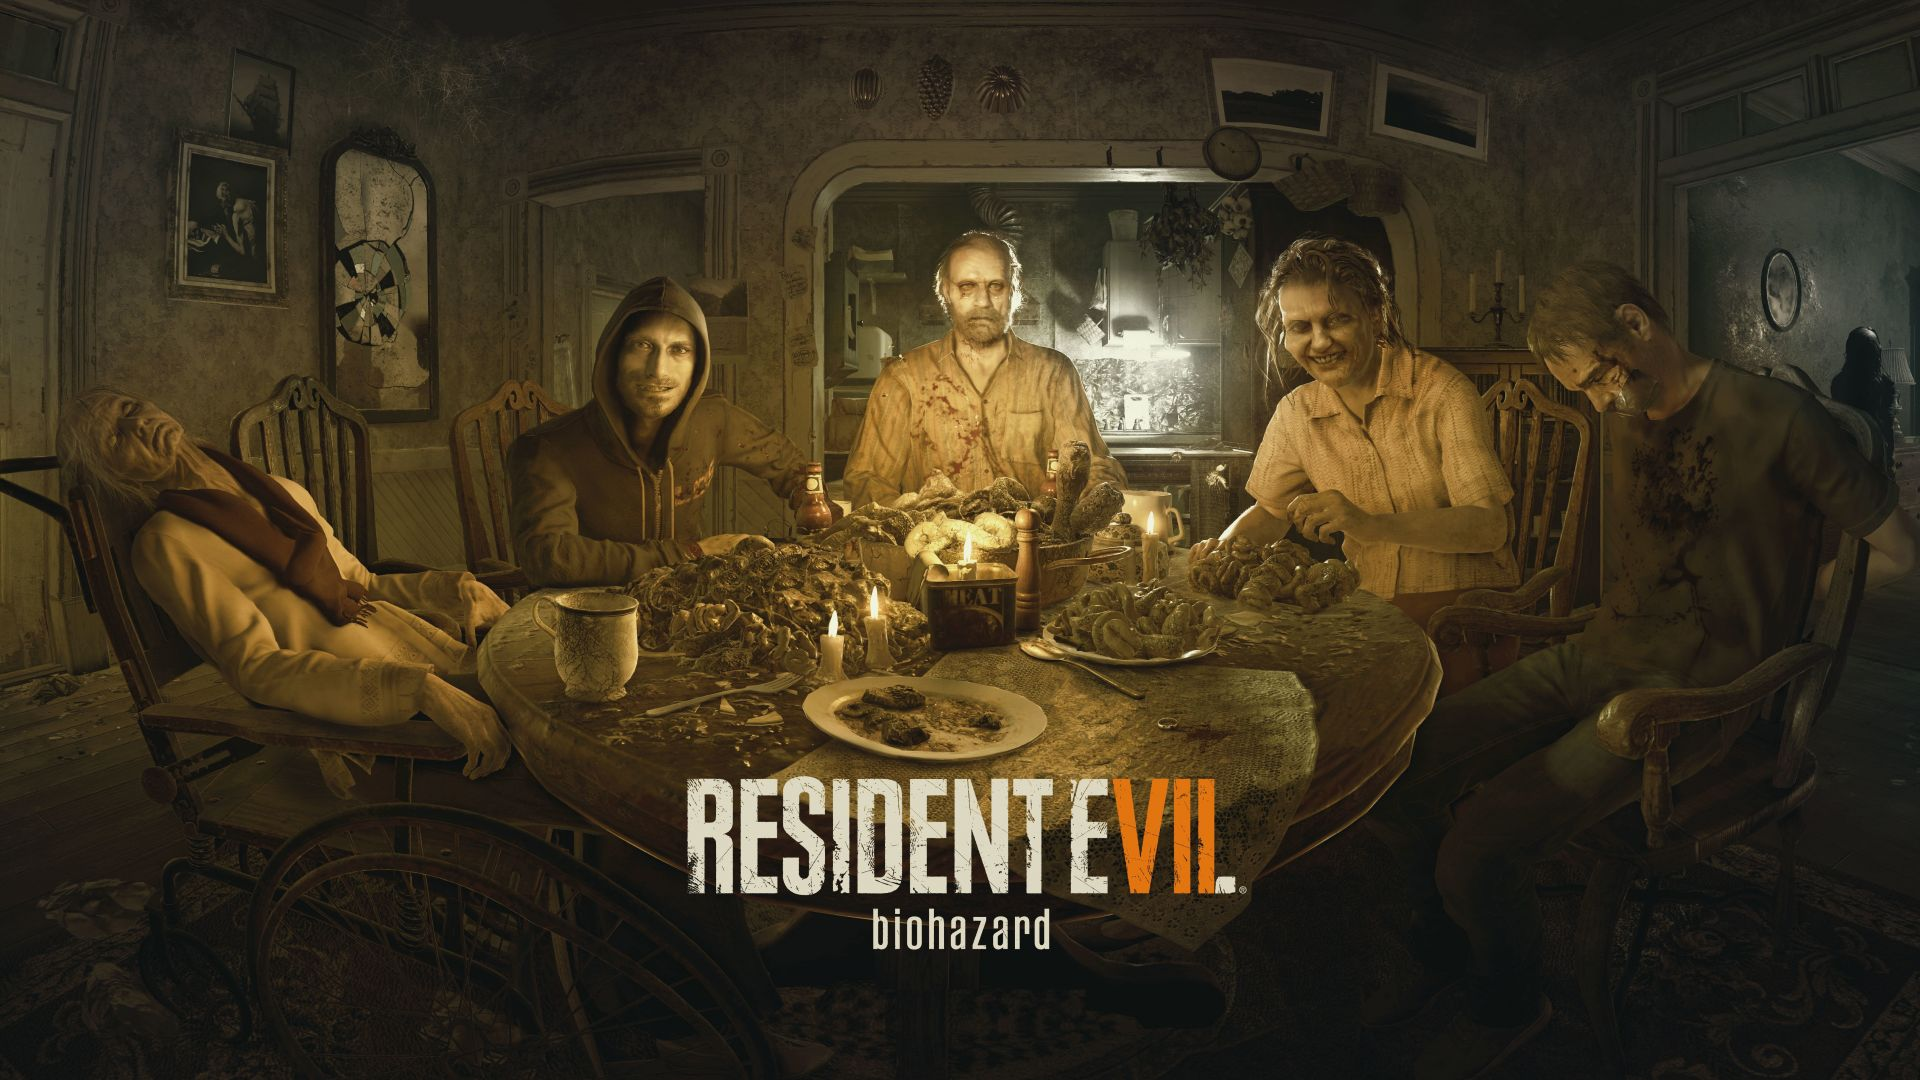 Resident Evil 7: Biohazard, VR, PS VR, PlayStation 4, Xbox One (horizontal)